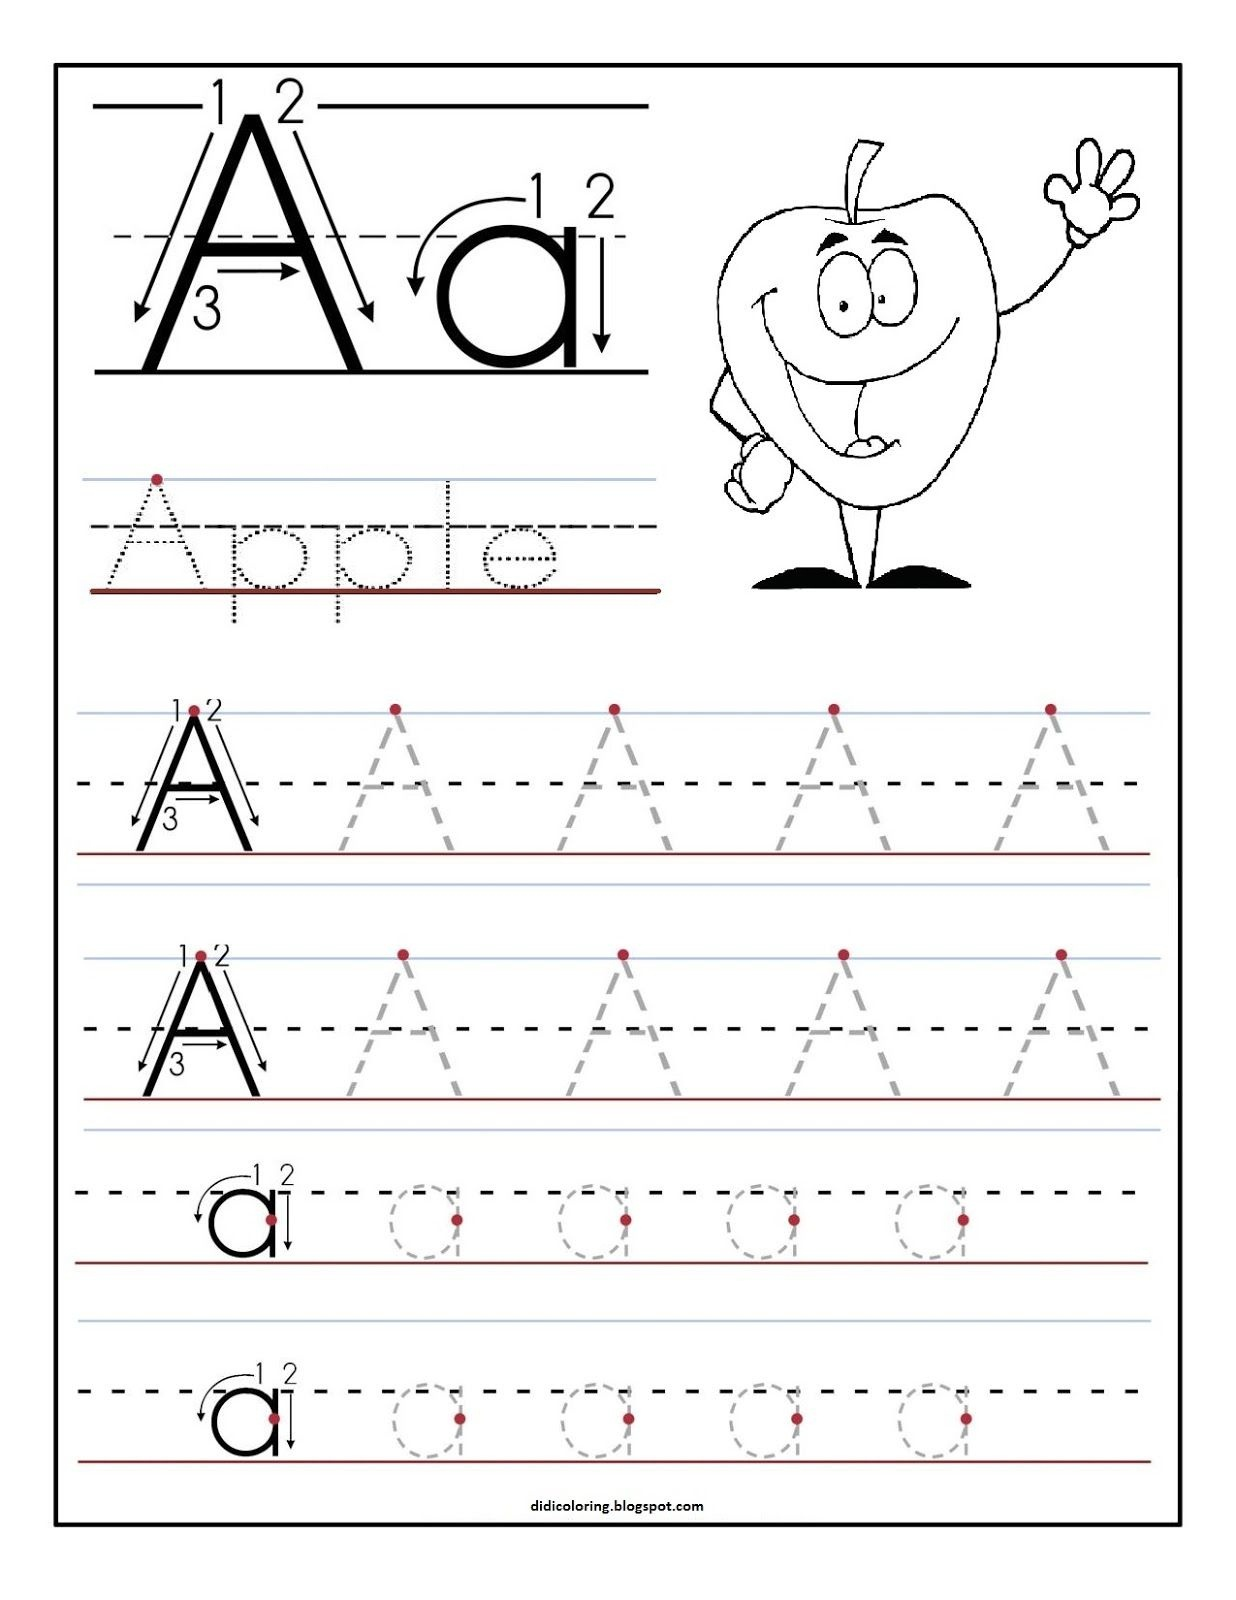 Free Printable Worksheet Letter A For Your Child To Learn And Write - Free Letter Printables For Preschool